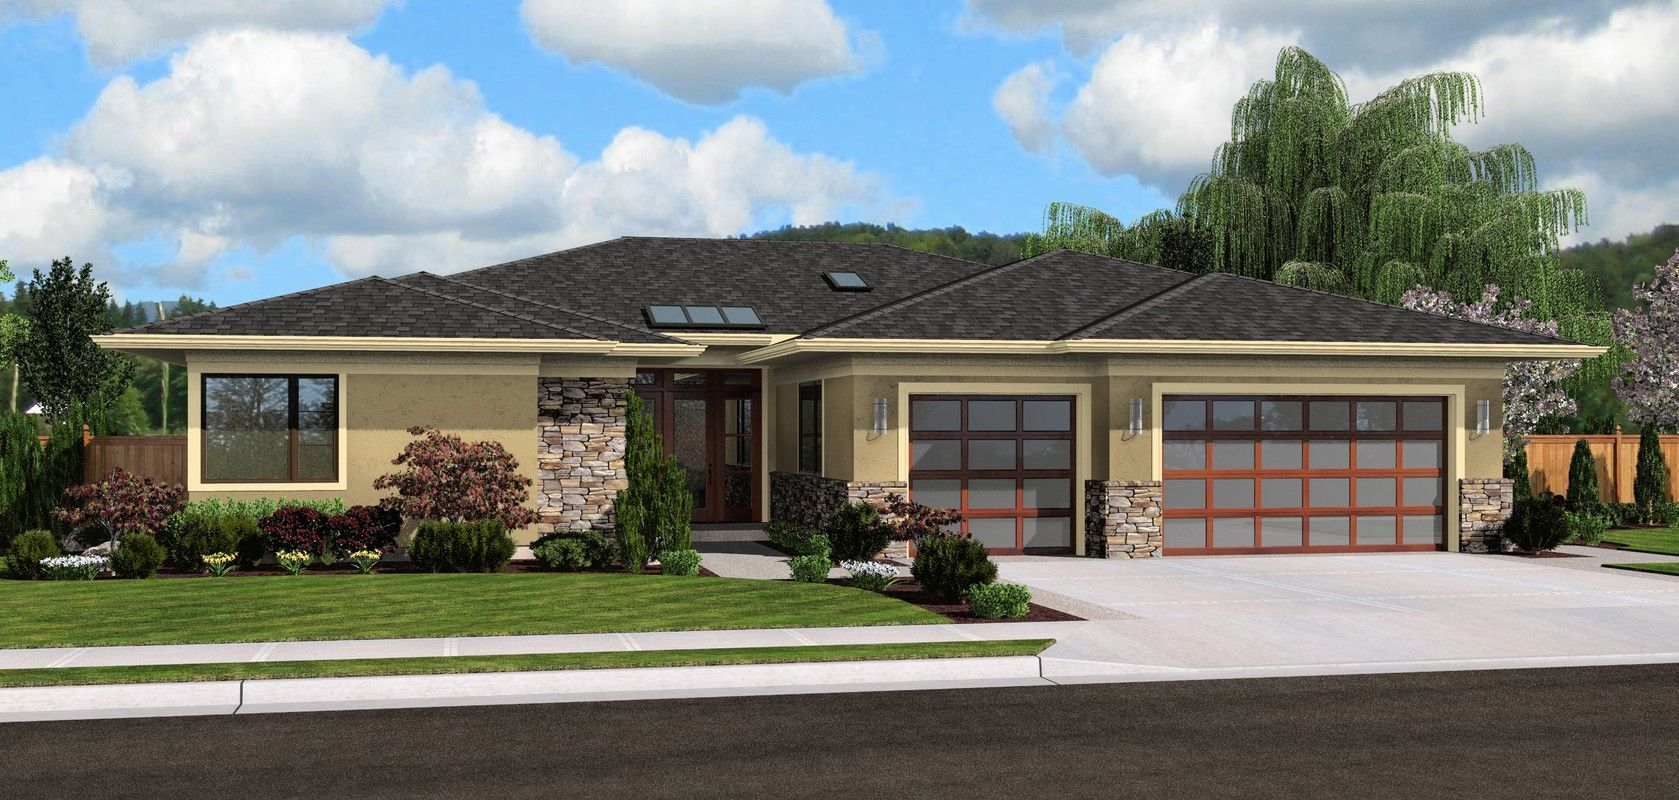 Mascord plan 1245 the riverside hoodriver homes for Mid century modern ranch style house plans